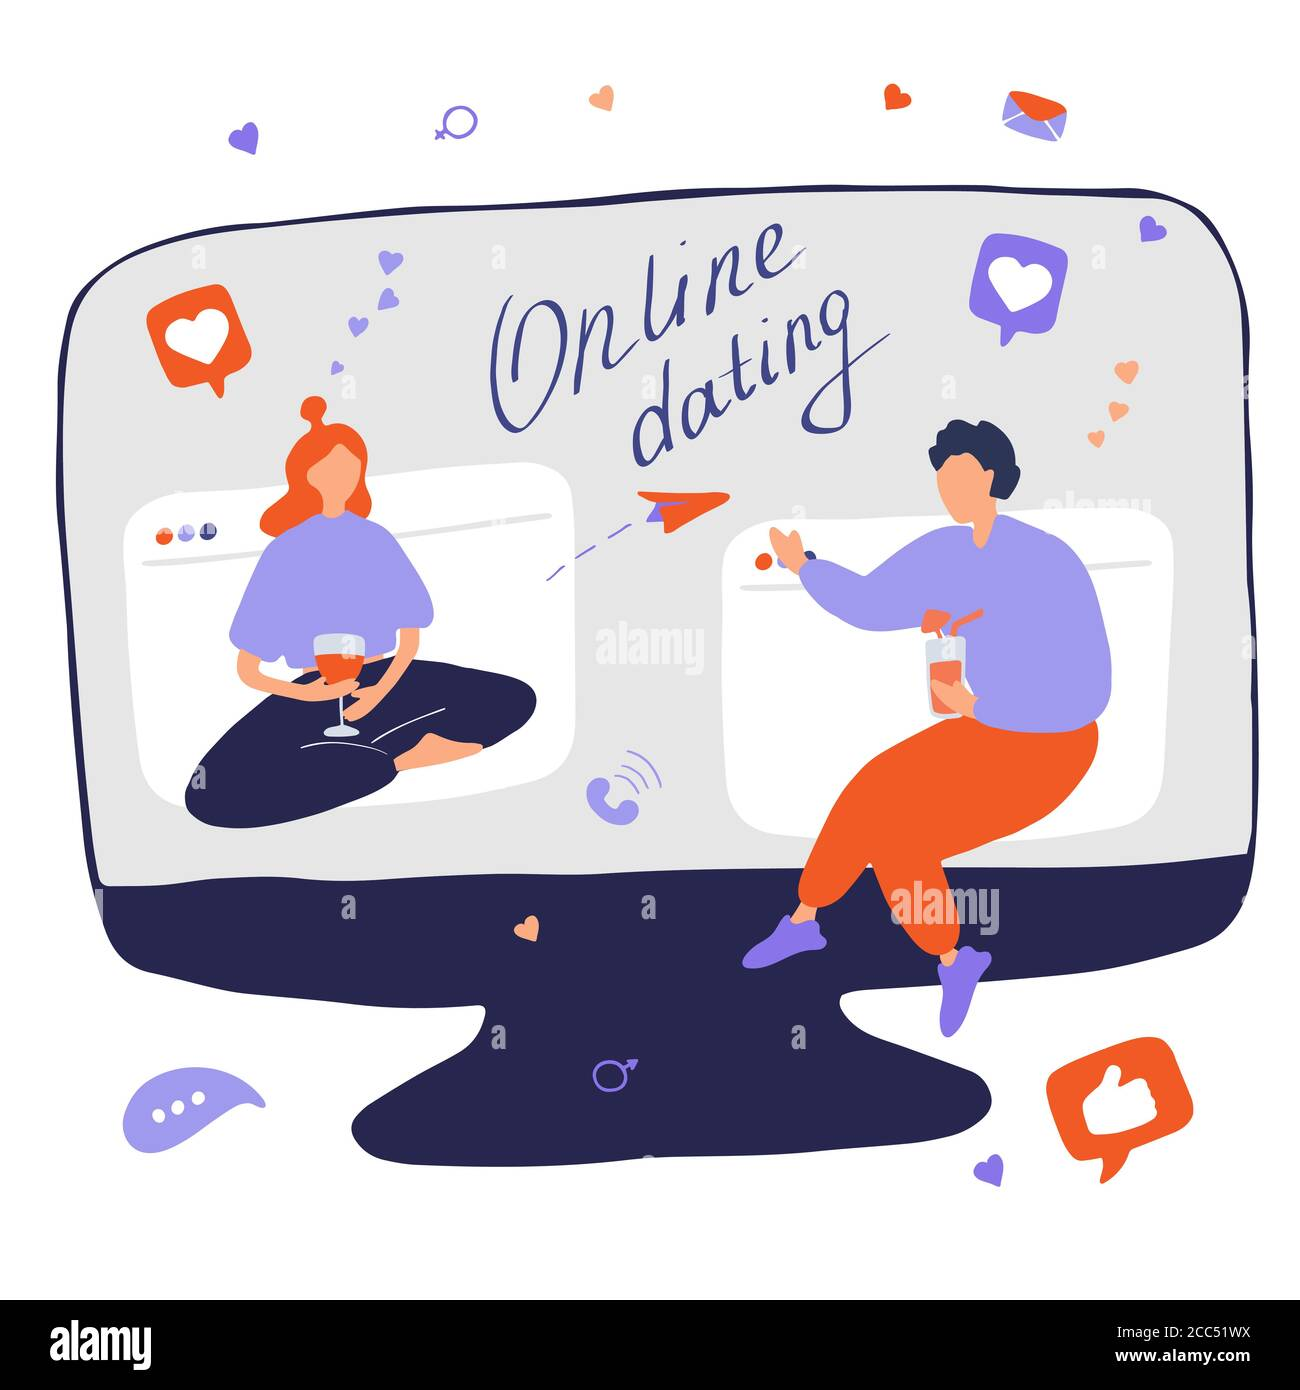 Internet dating. Internet flirting and relationships. Mobile service, application for meeting foreigners. Flat vector illustration Stock Vector